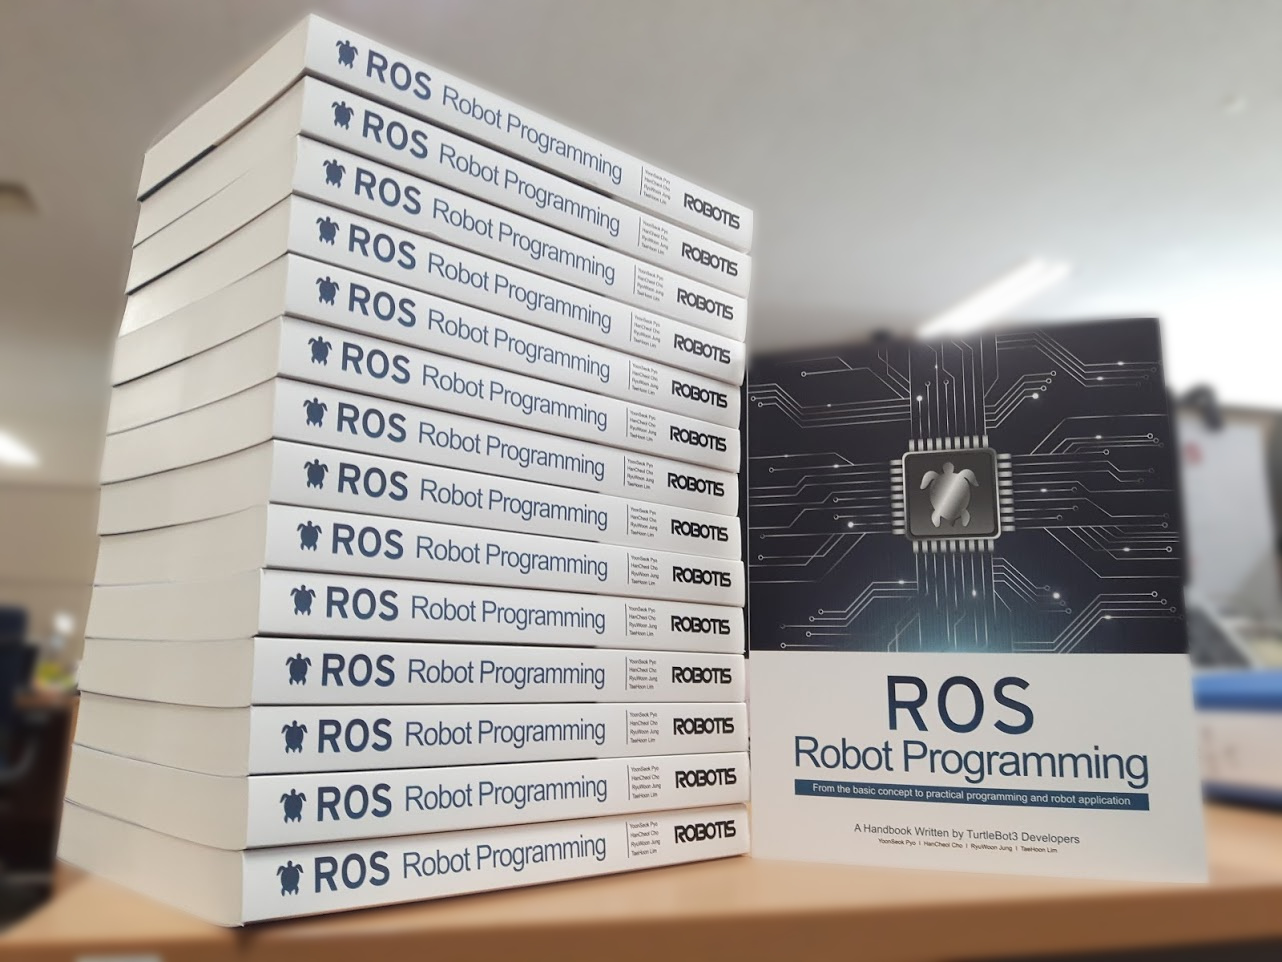 Download the 'ROS Robot Programming' Book for Free! - Learn Robotics